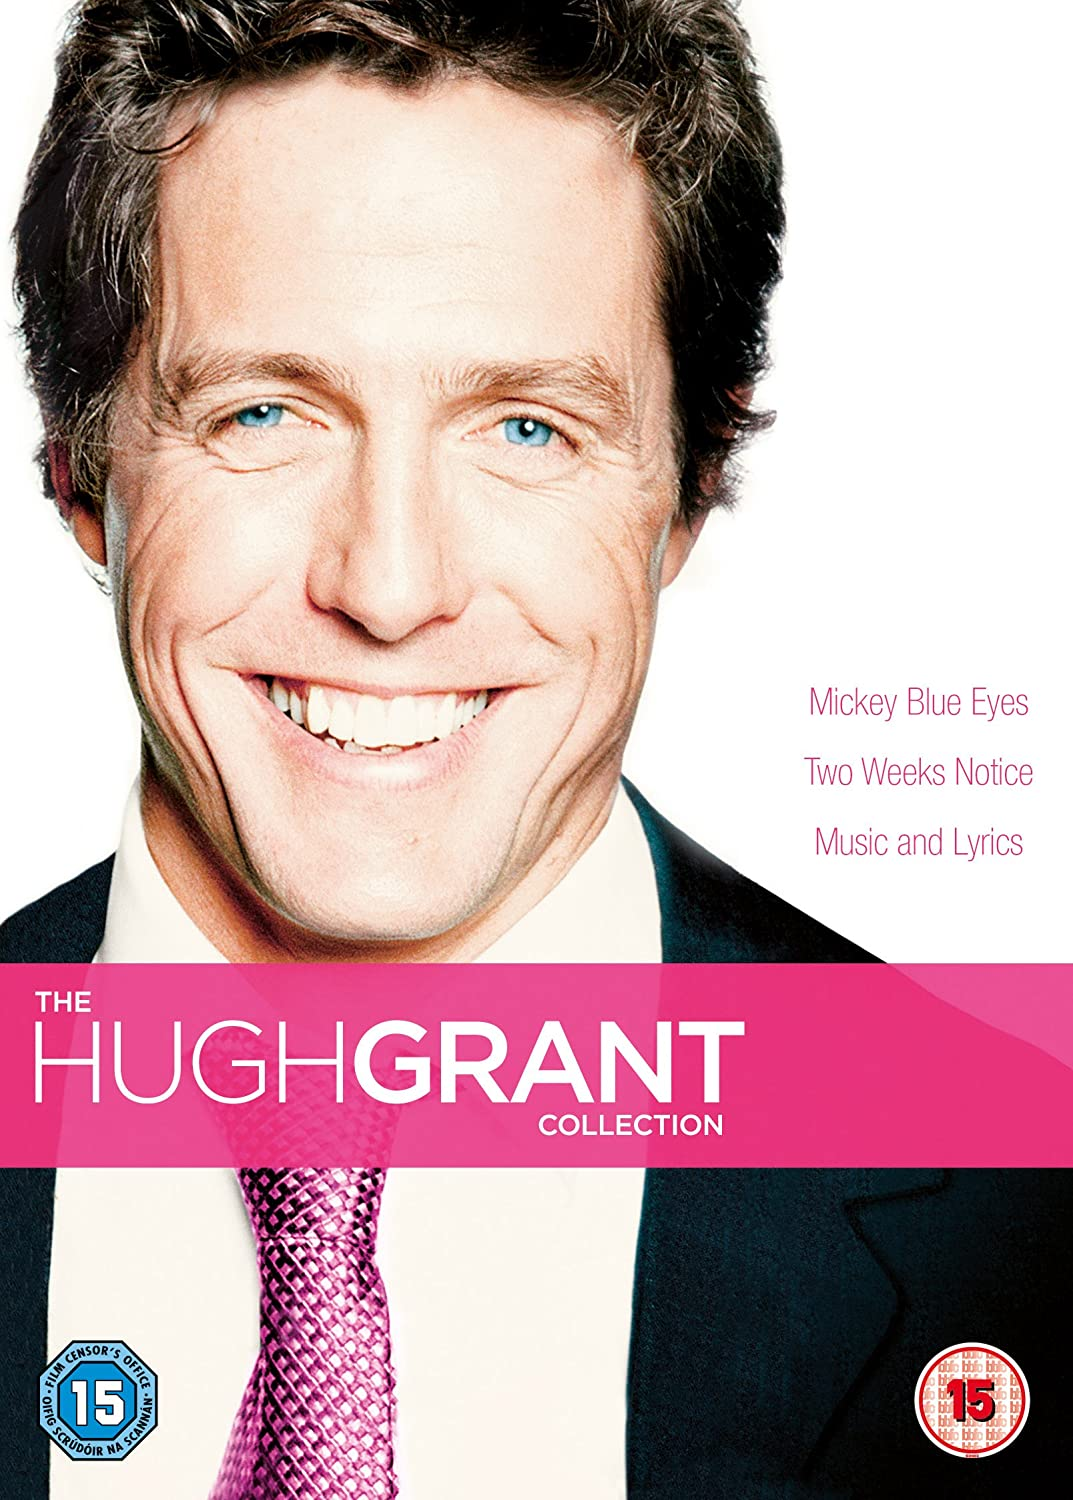 Amazon Com Hugh Grant Collection Mickey Blue Eyes Music And Lyrics Two Weeks Notice Dvd 2011 Movies Tv